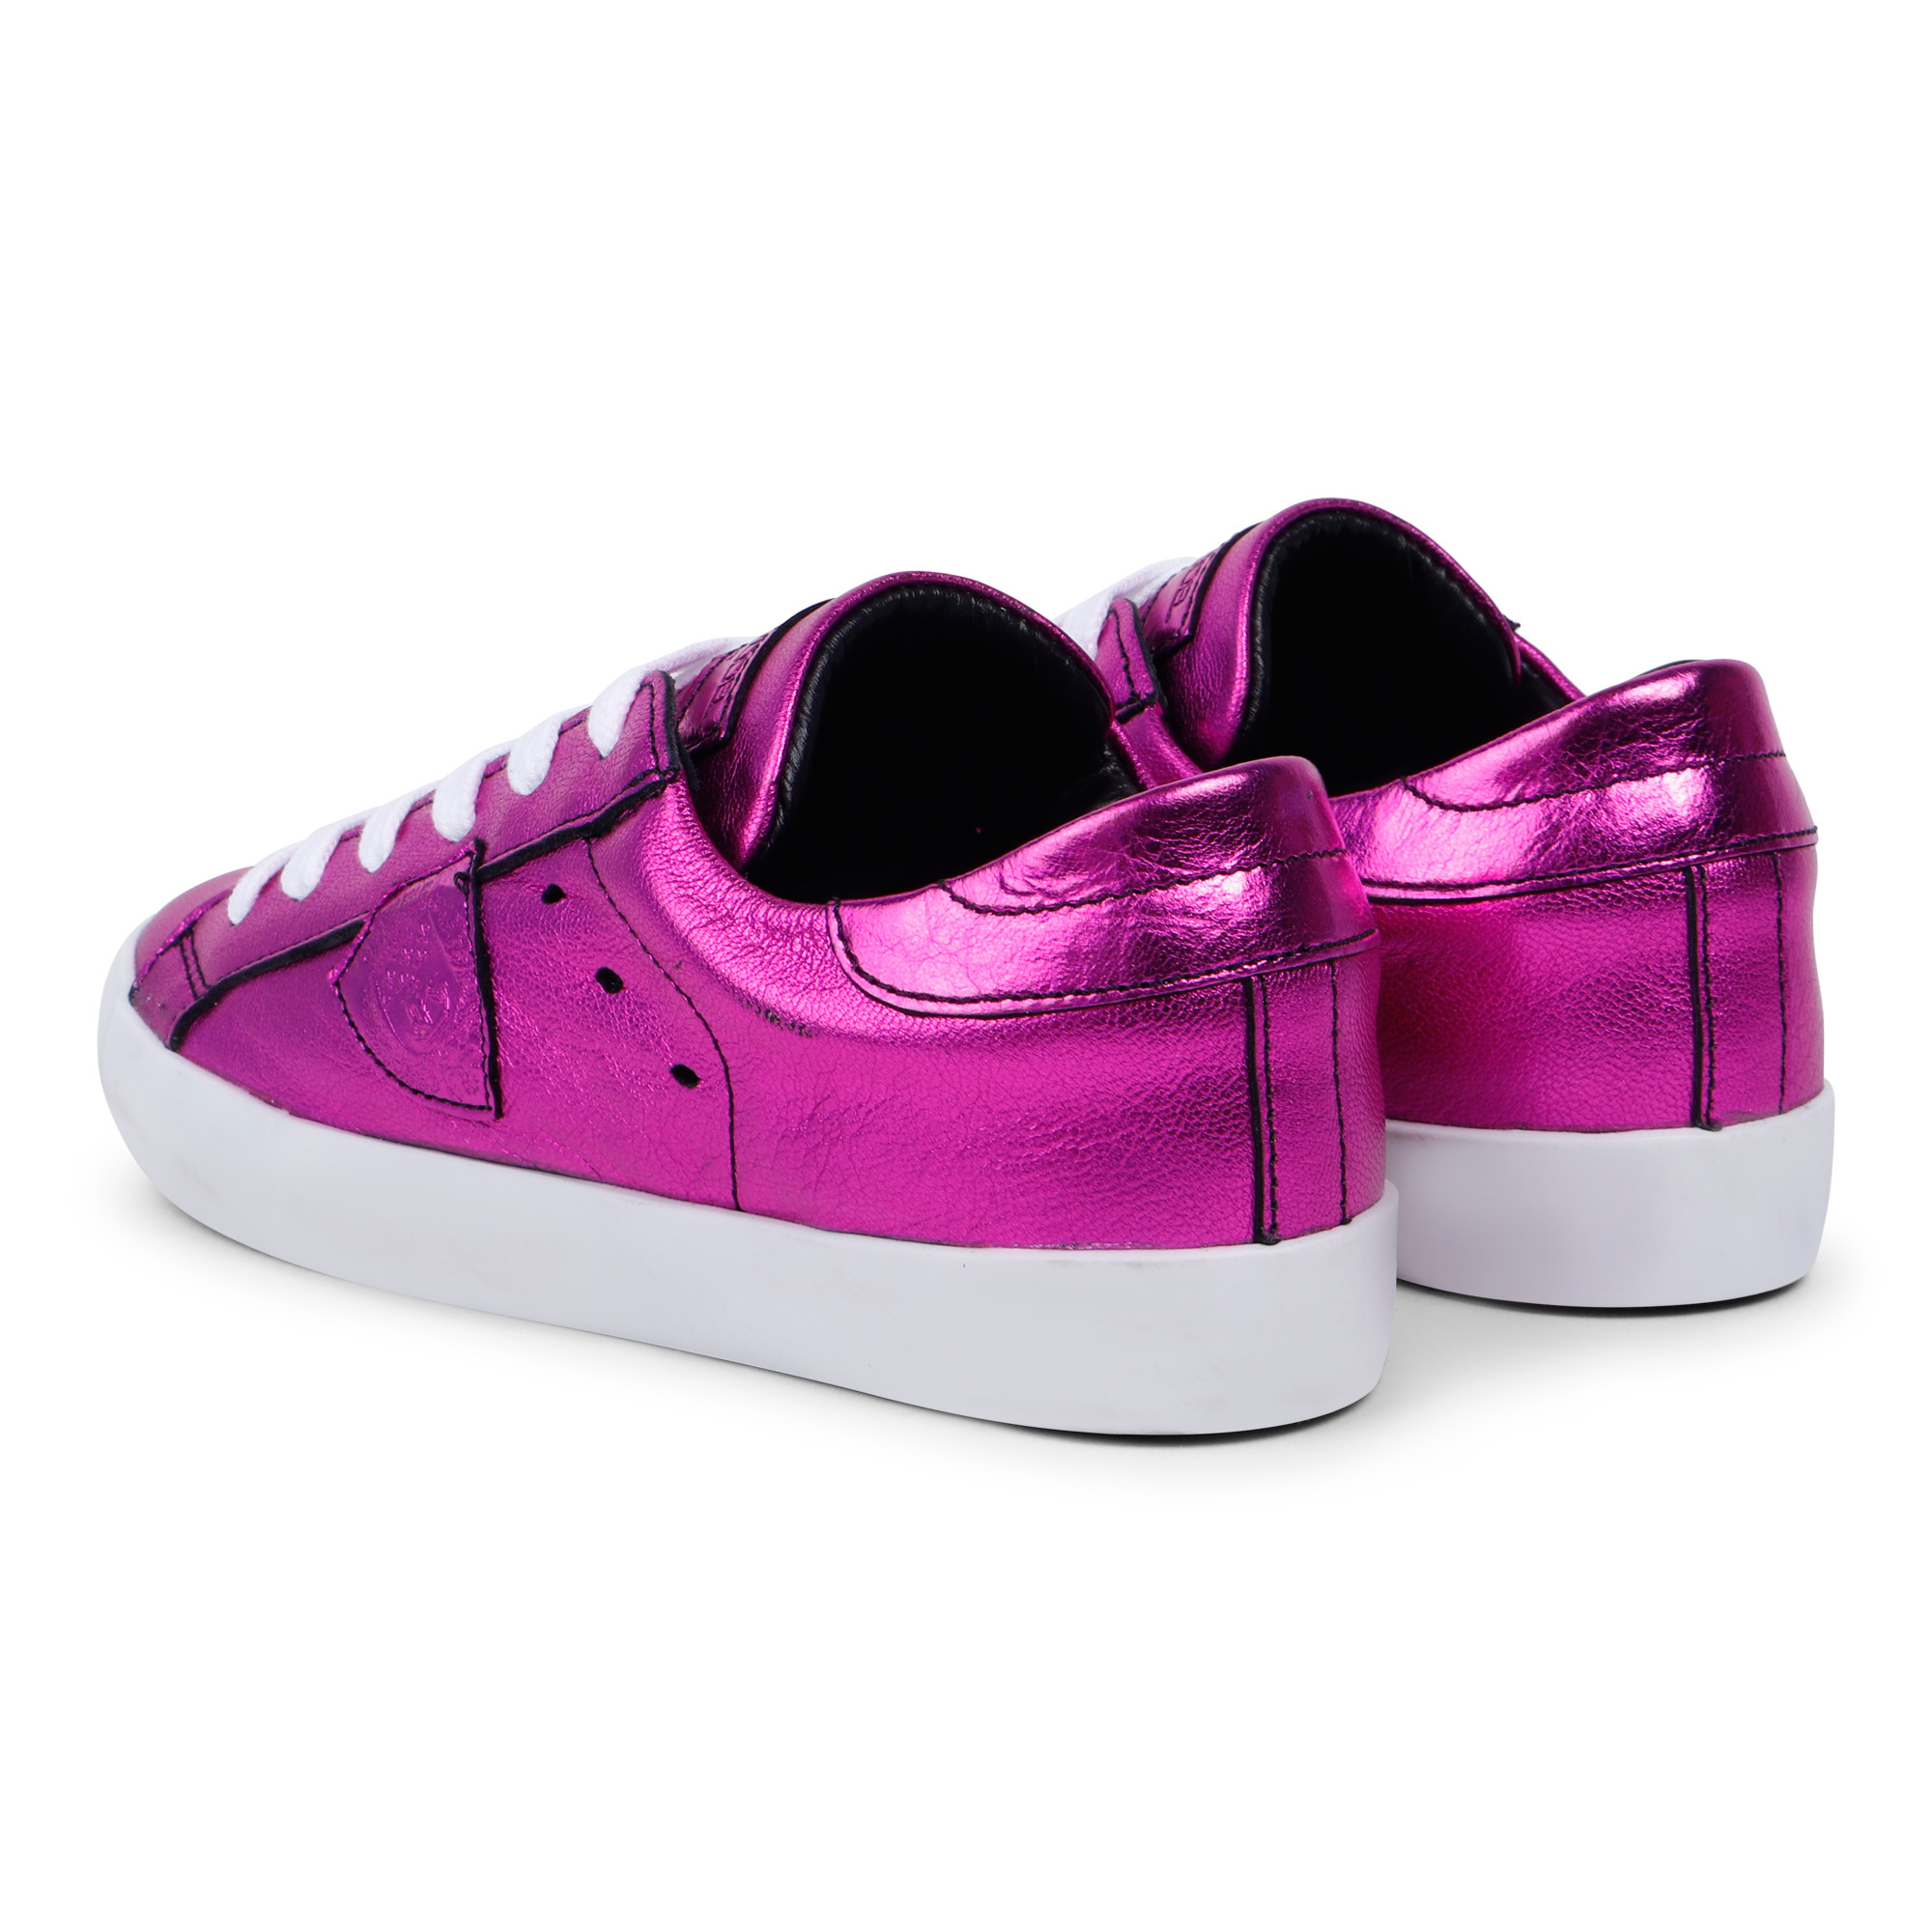 Philippe Model Girls Leather Sneakers